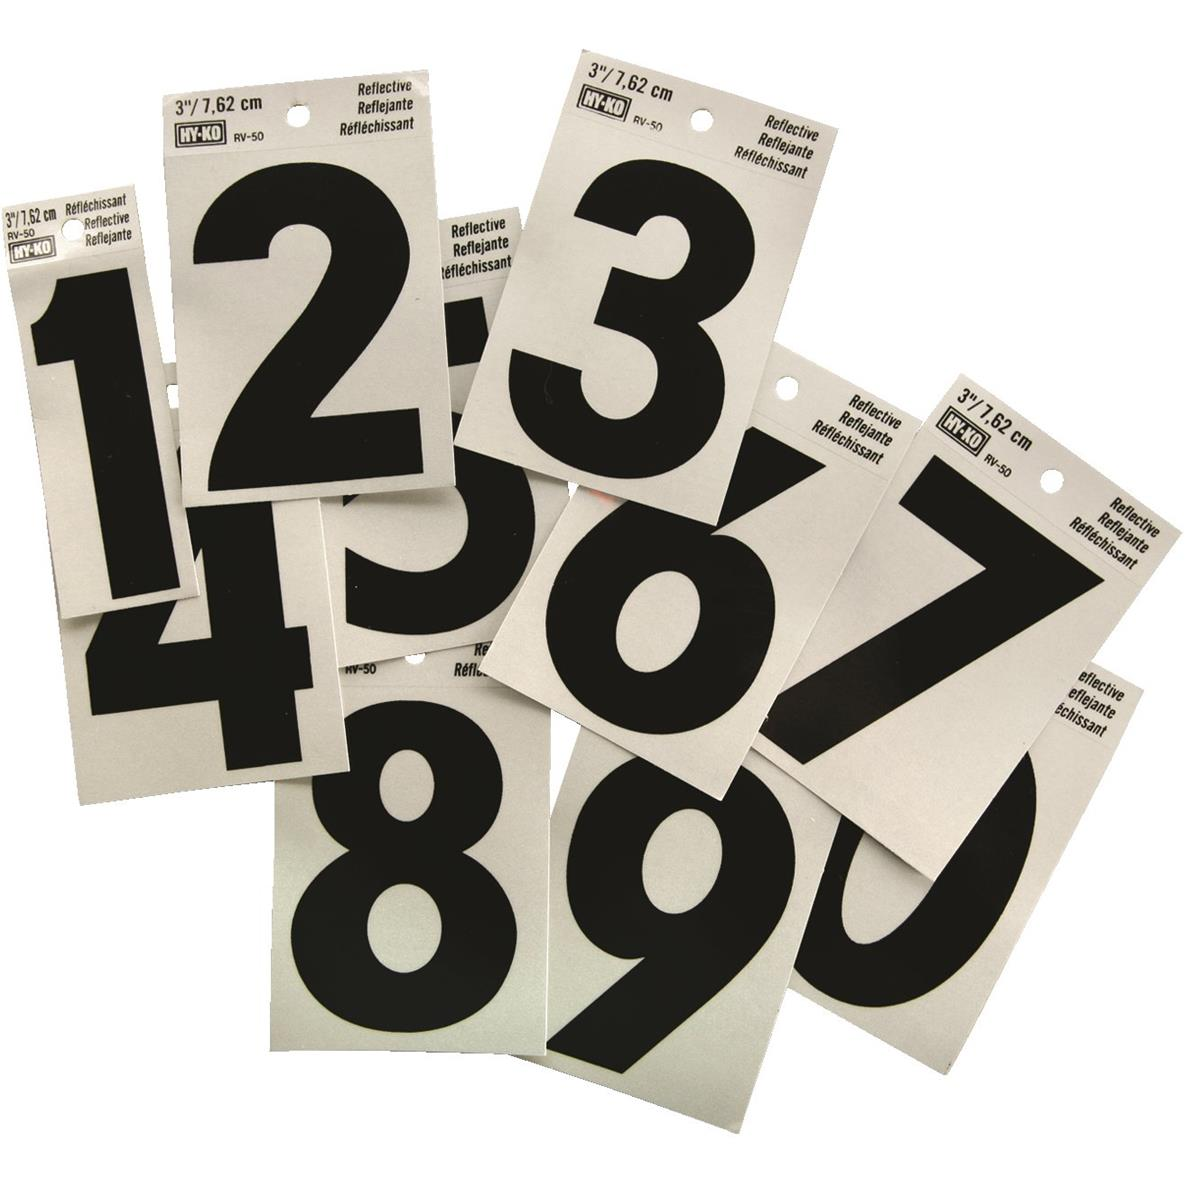 Self-adhesive Reflective Numbers